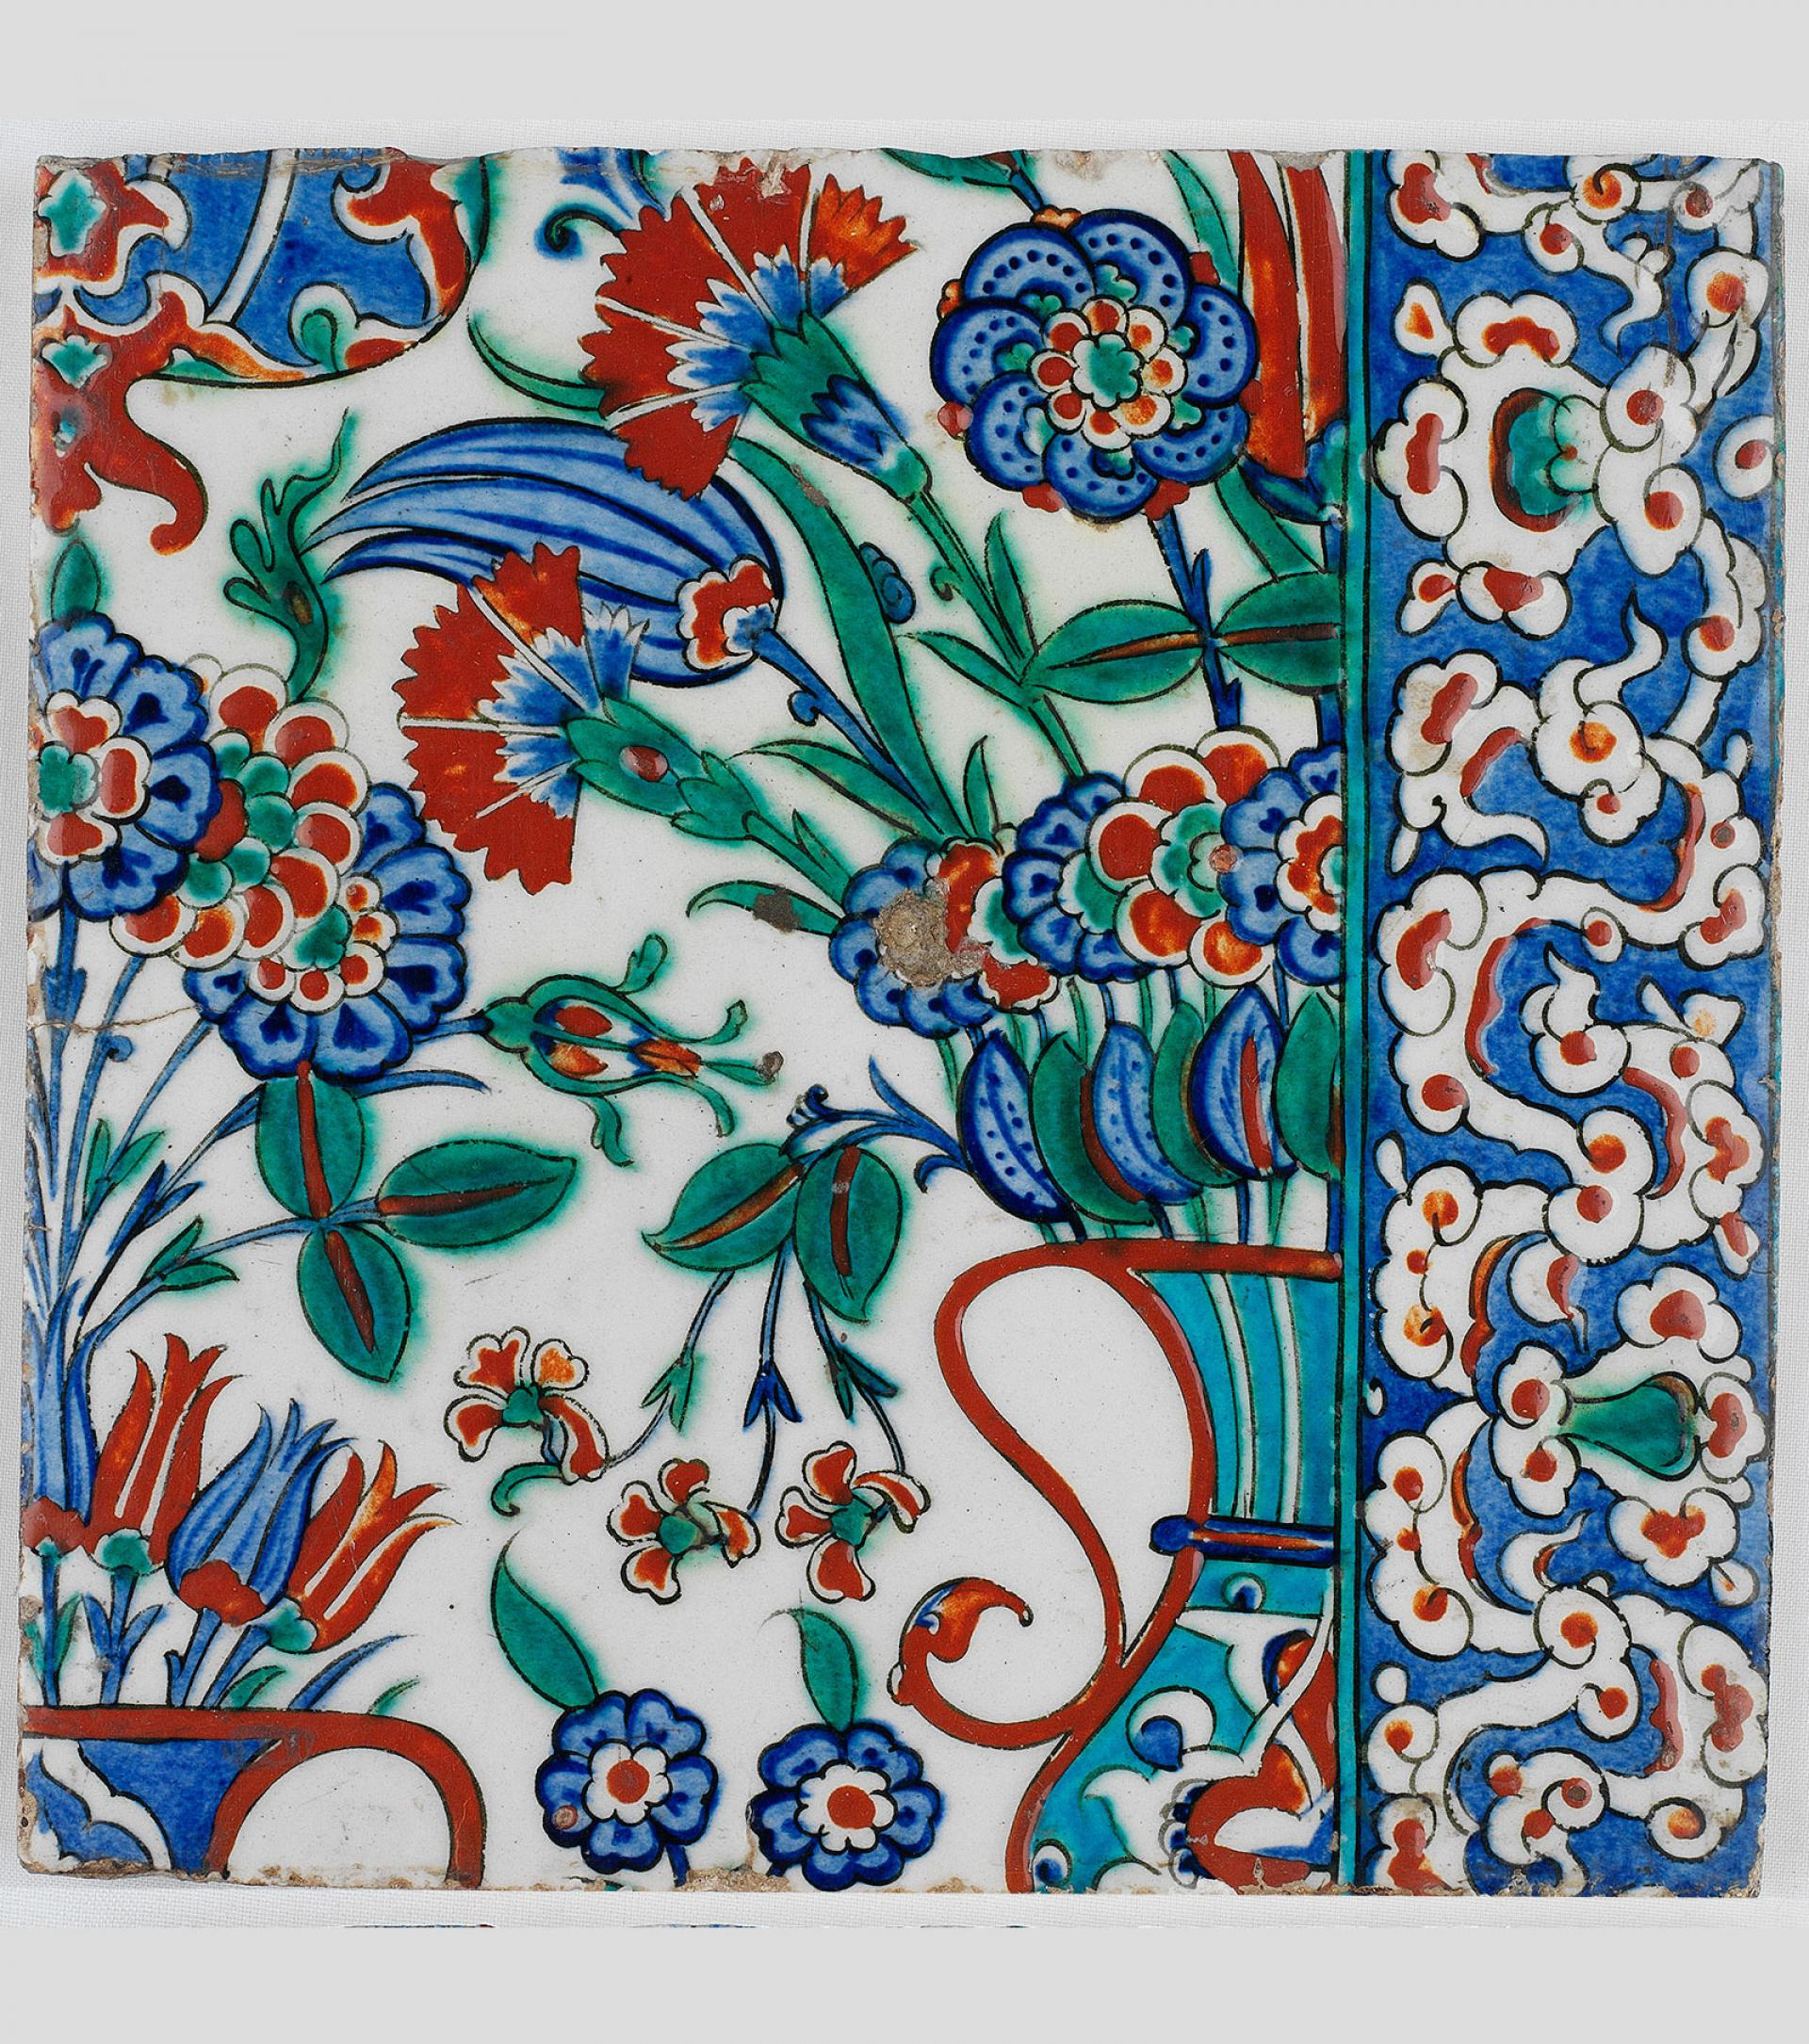 SHM17582 - TileOttoman, second half of 16th century Iznik